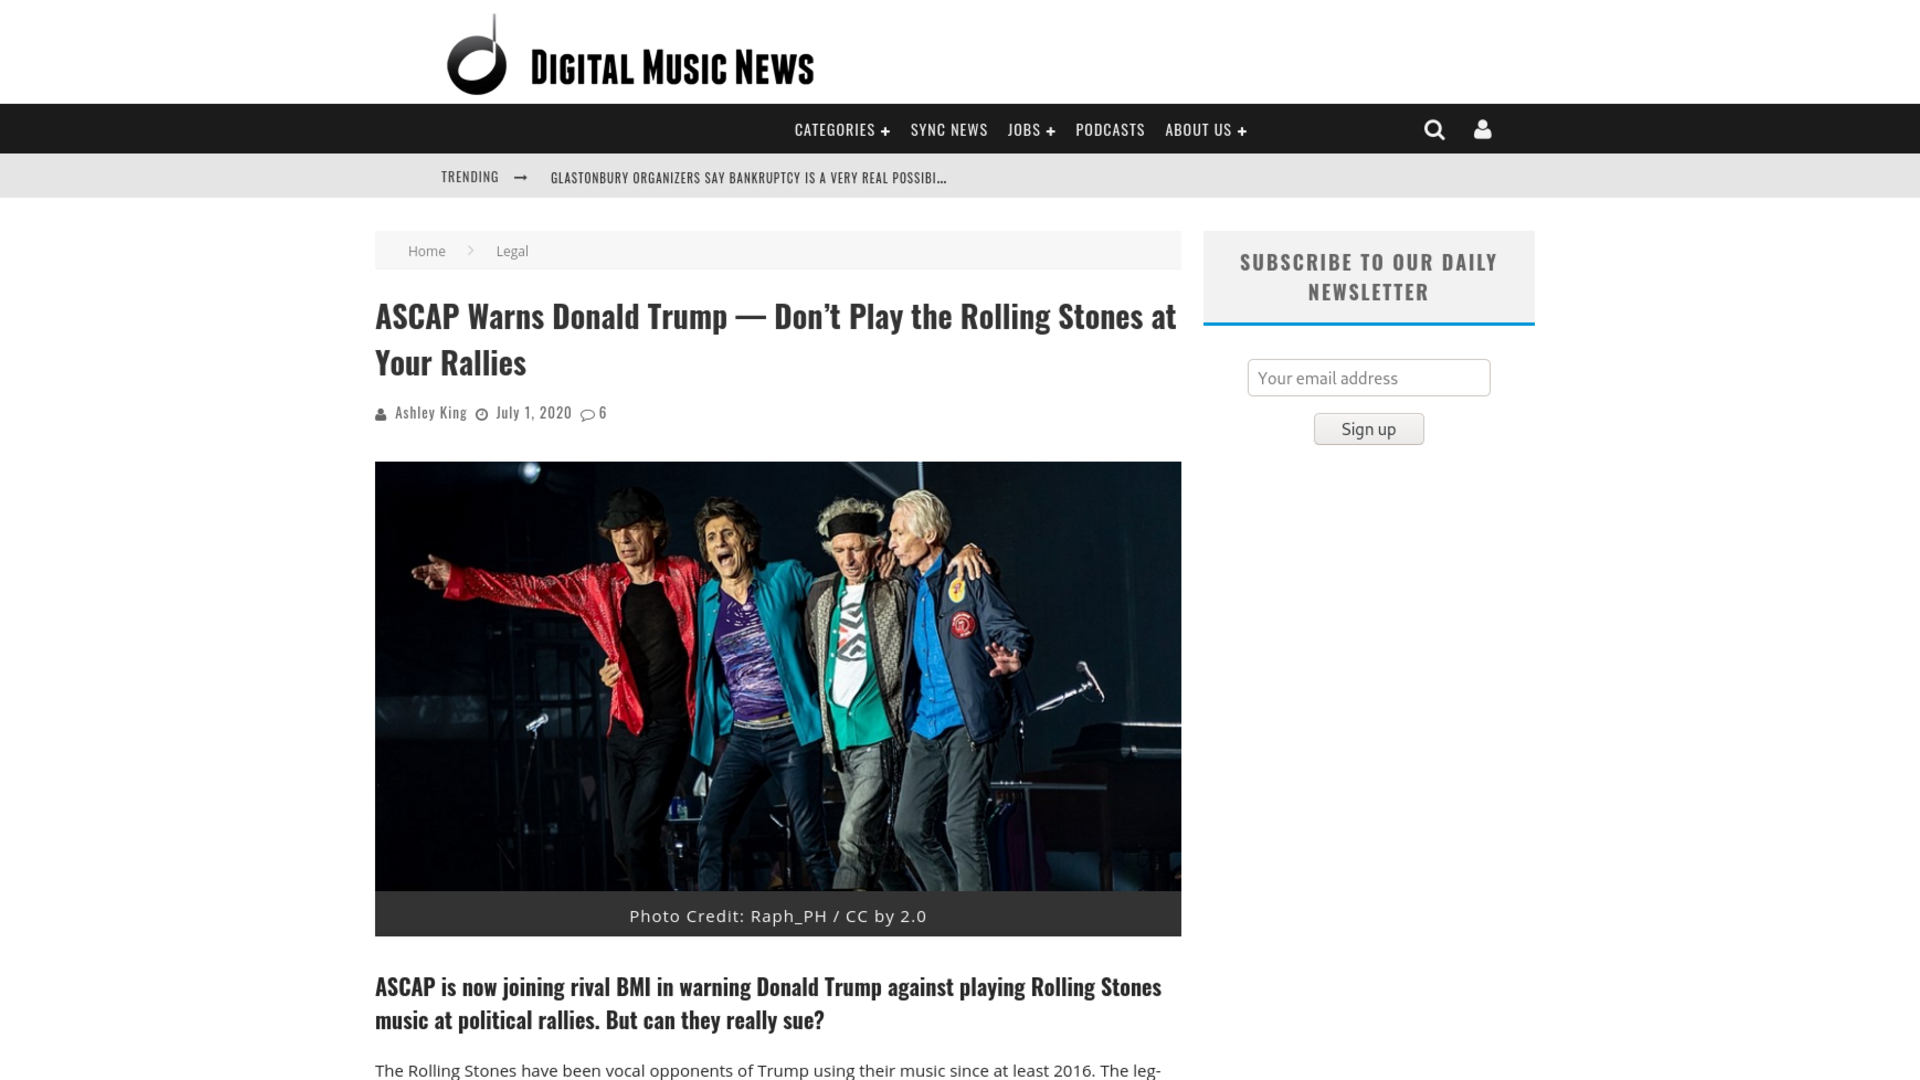 Fairness Rocks News ASCAP Warns Donald Trump — Don't Play the Rolling Stones at Your Rallies